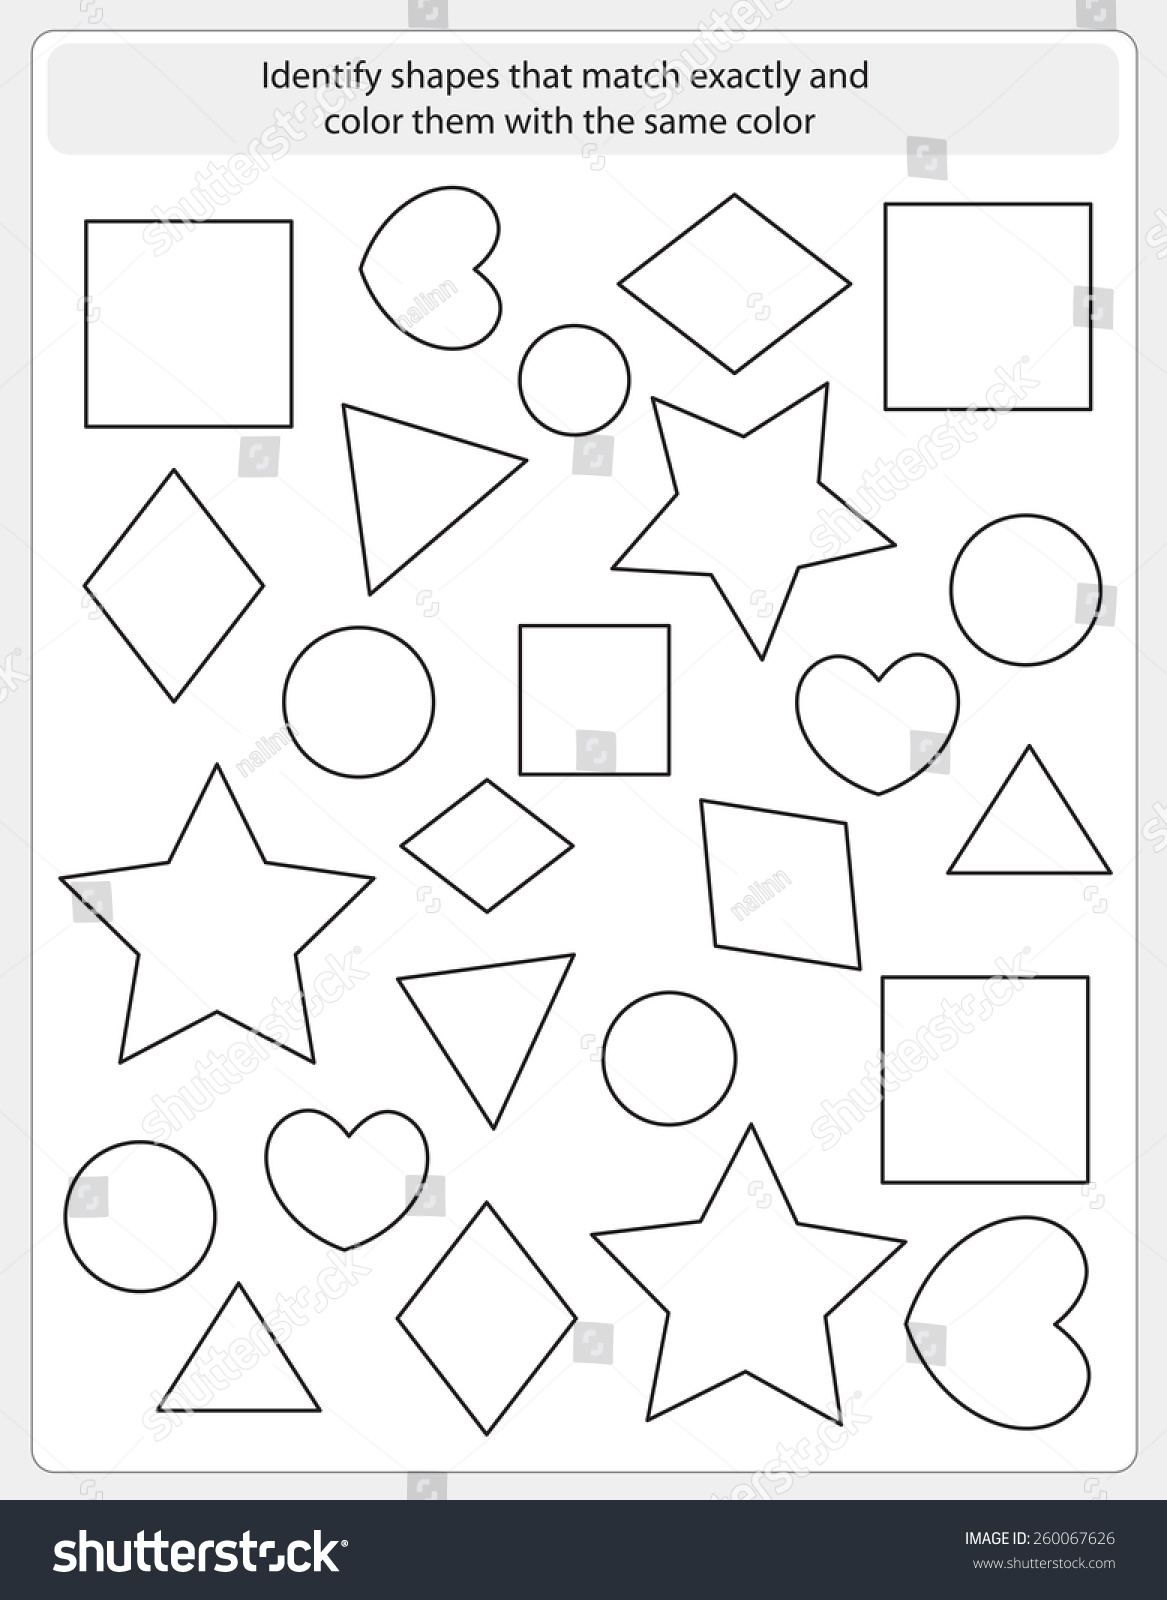 Worksheet Matching Same Color